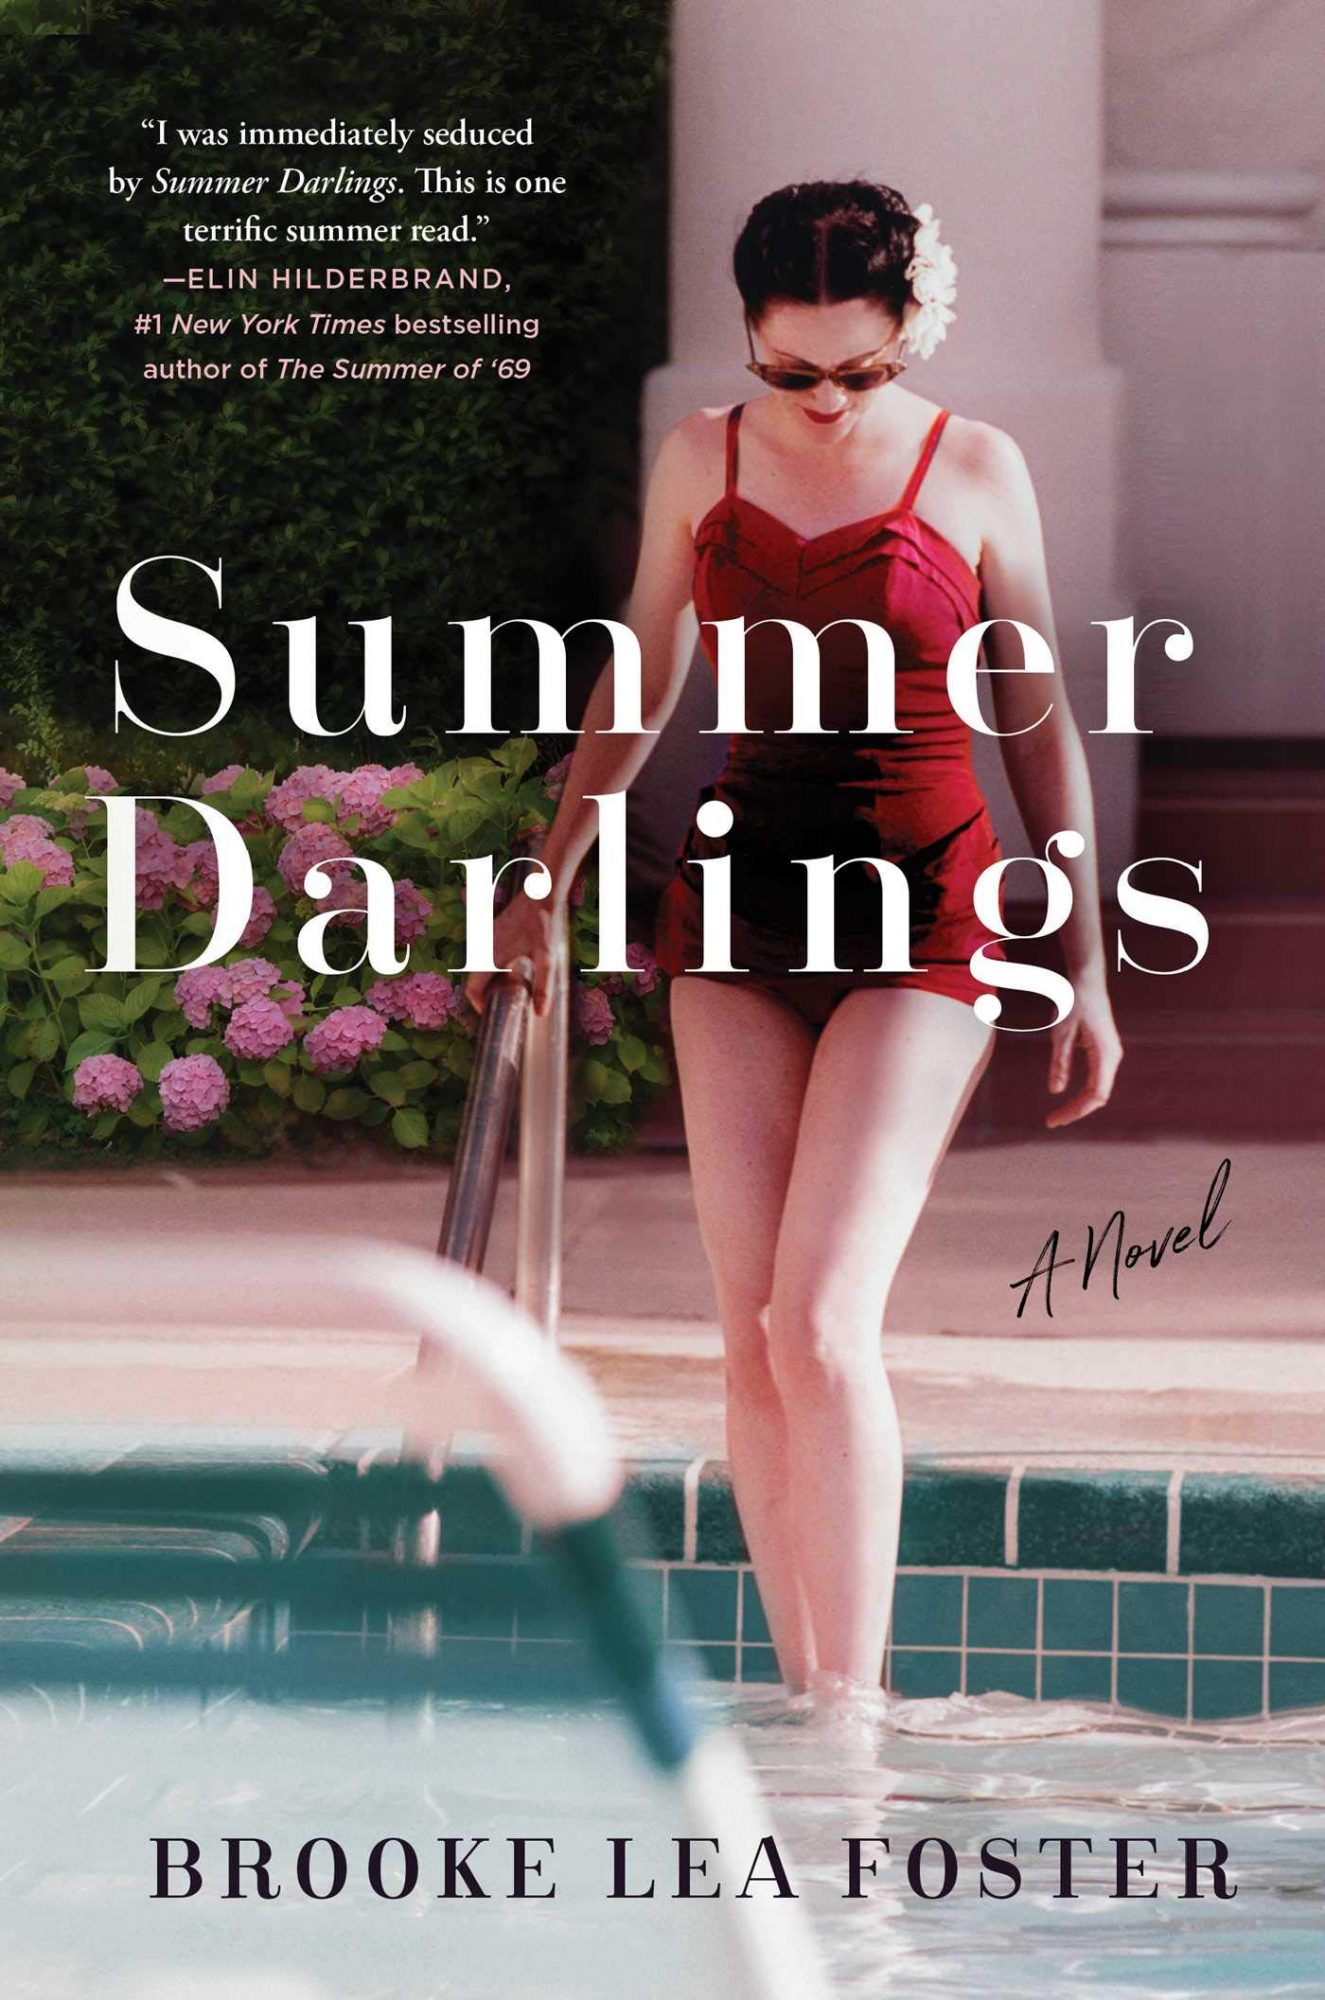 Summer Darlings by Brooke Lea Foster